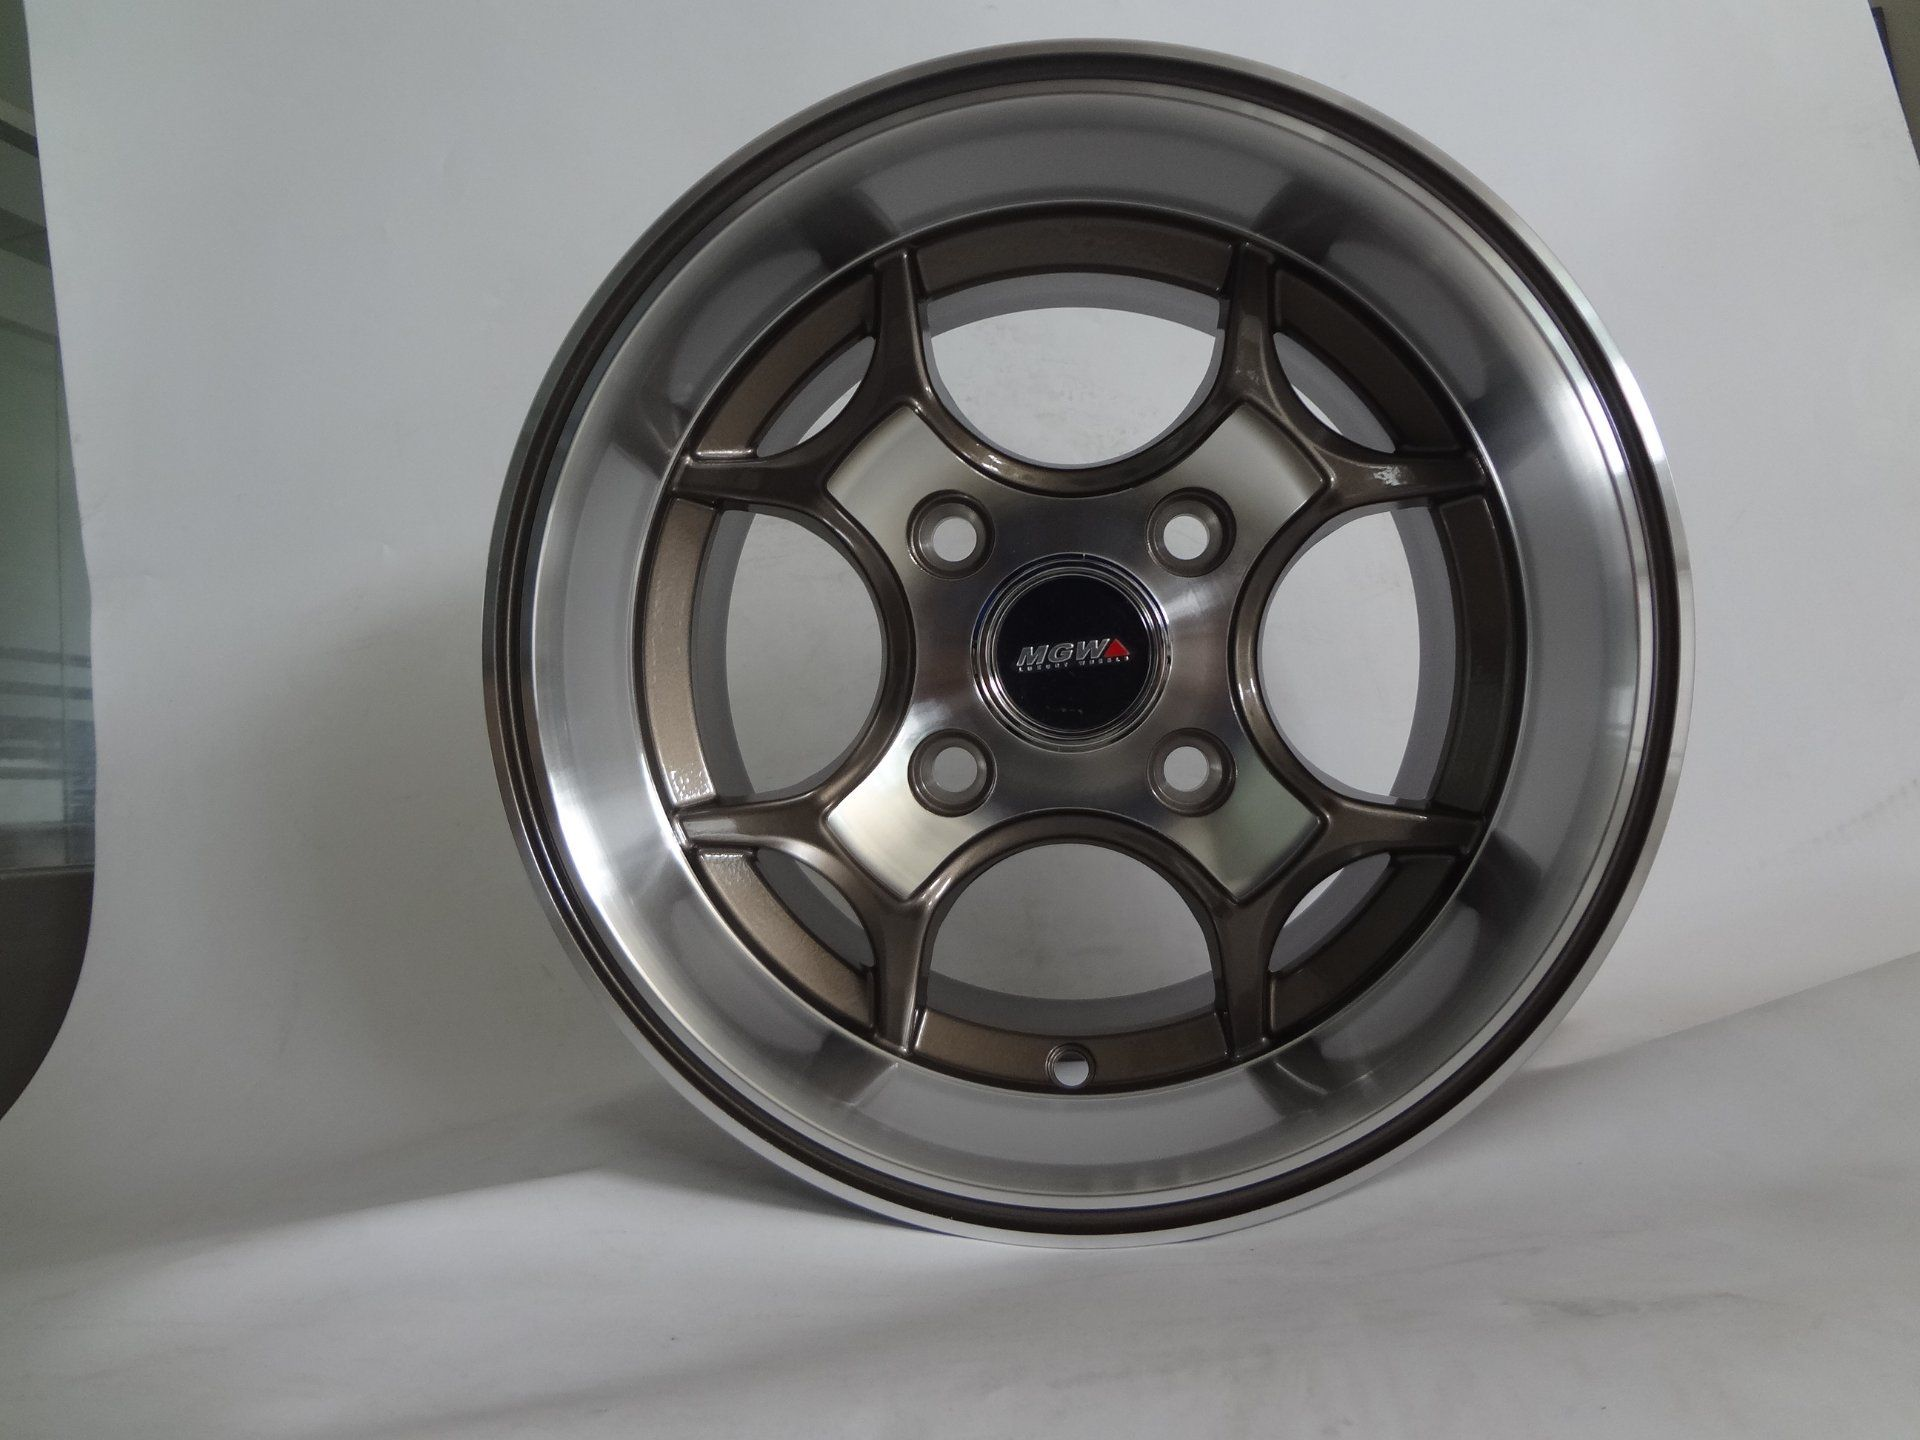 12 Inch Volk Racing Alloy Wheel Alloy Wheel Wheel Wheel Rims